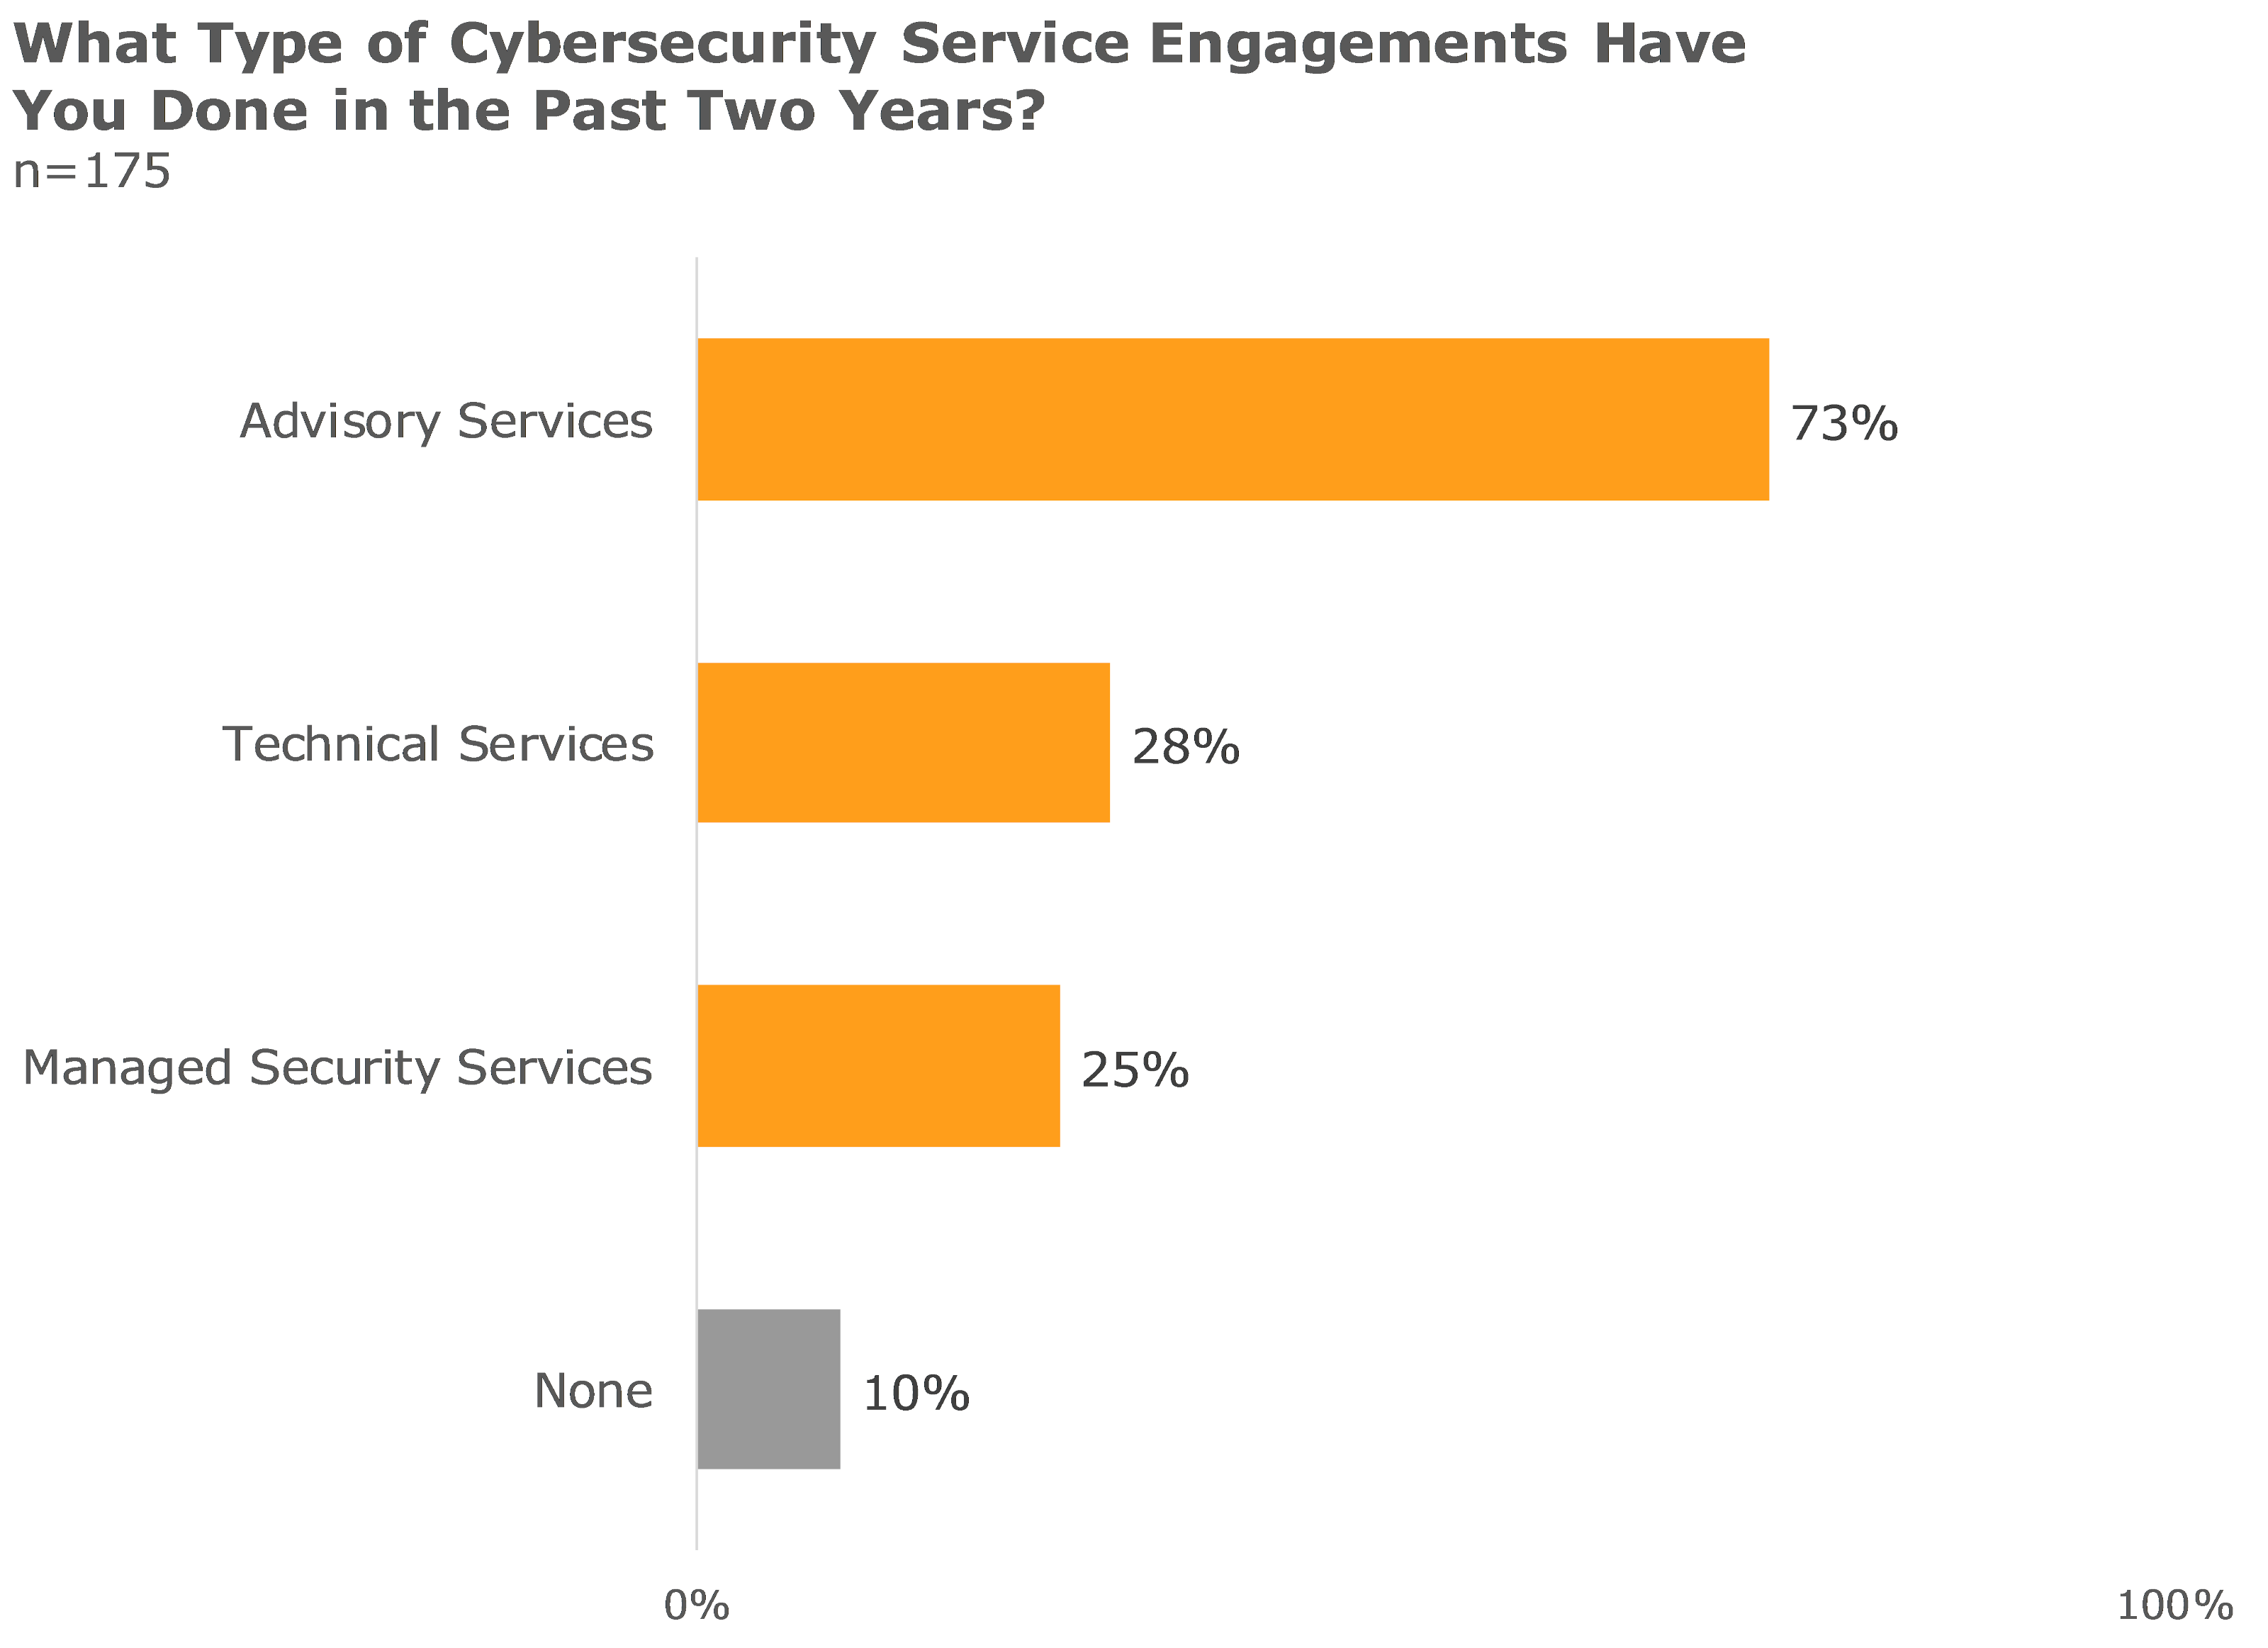 what type of cybersecurity service engagements have you done in the past two years